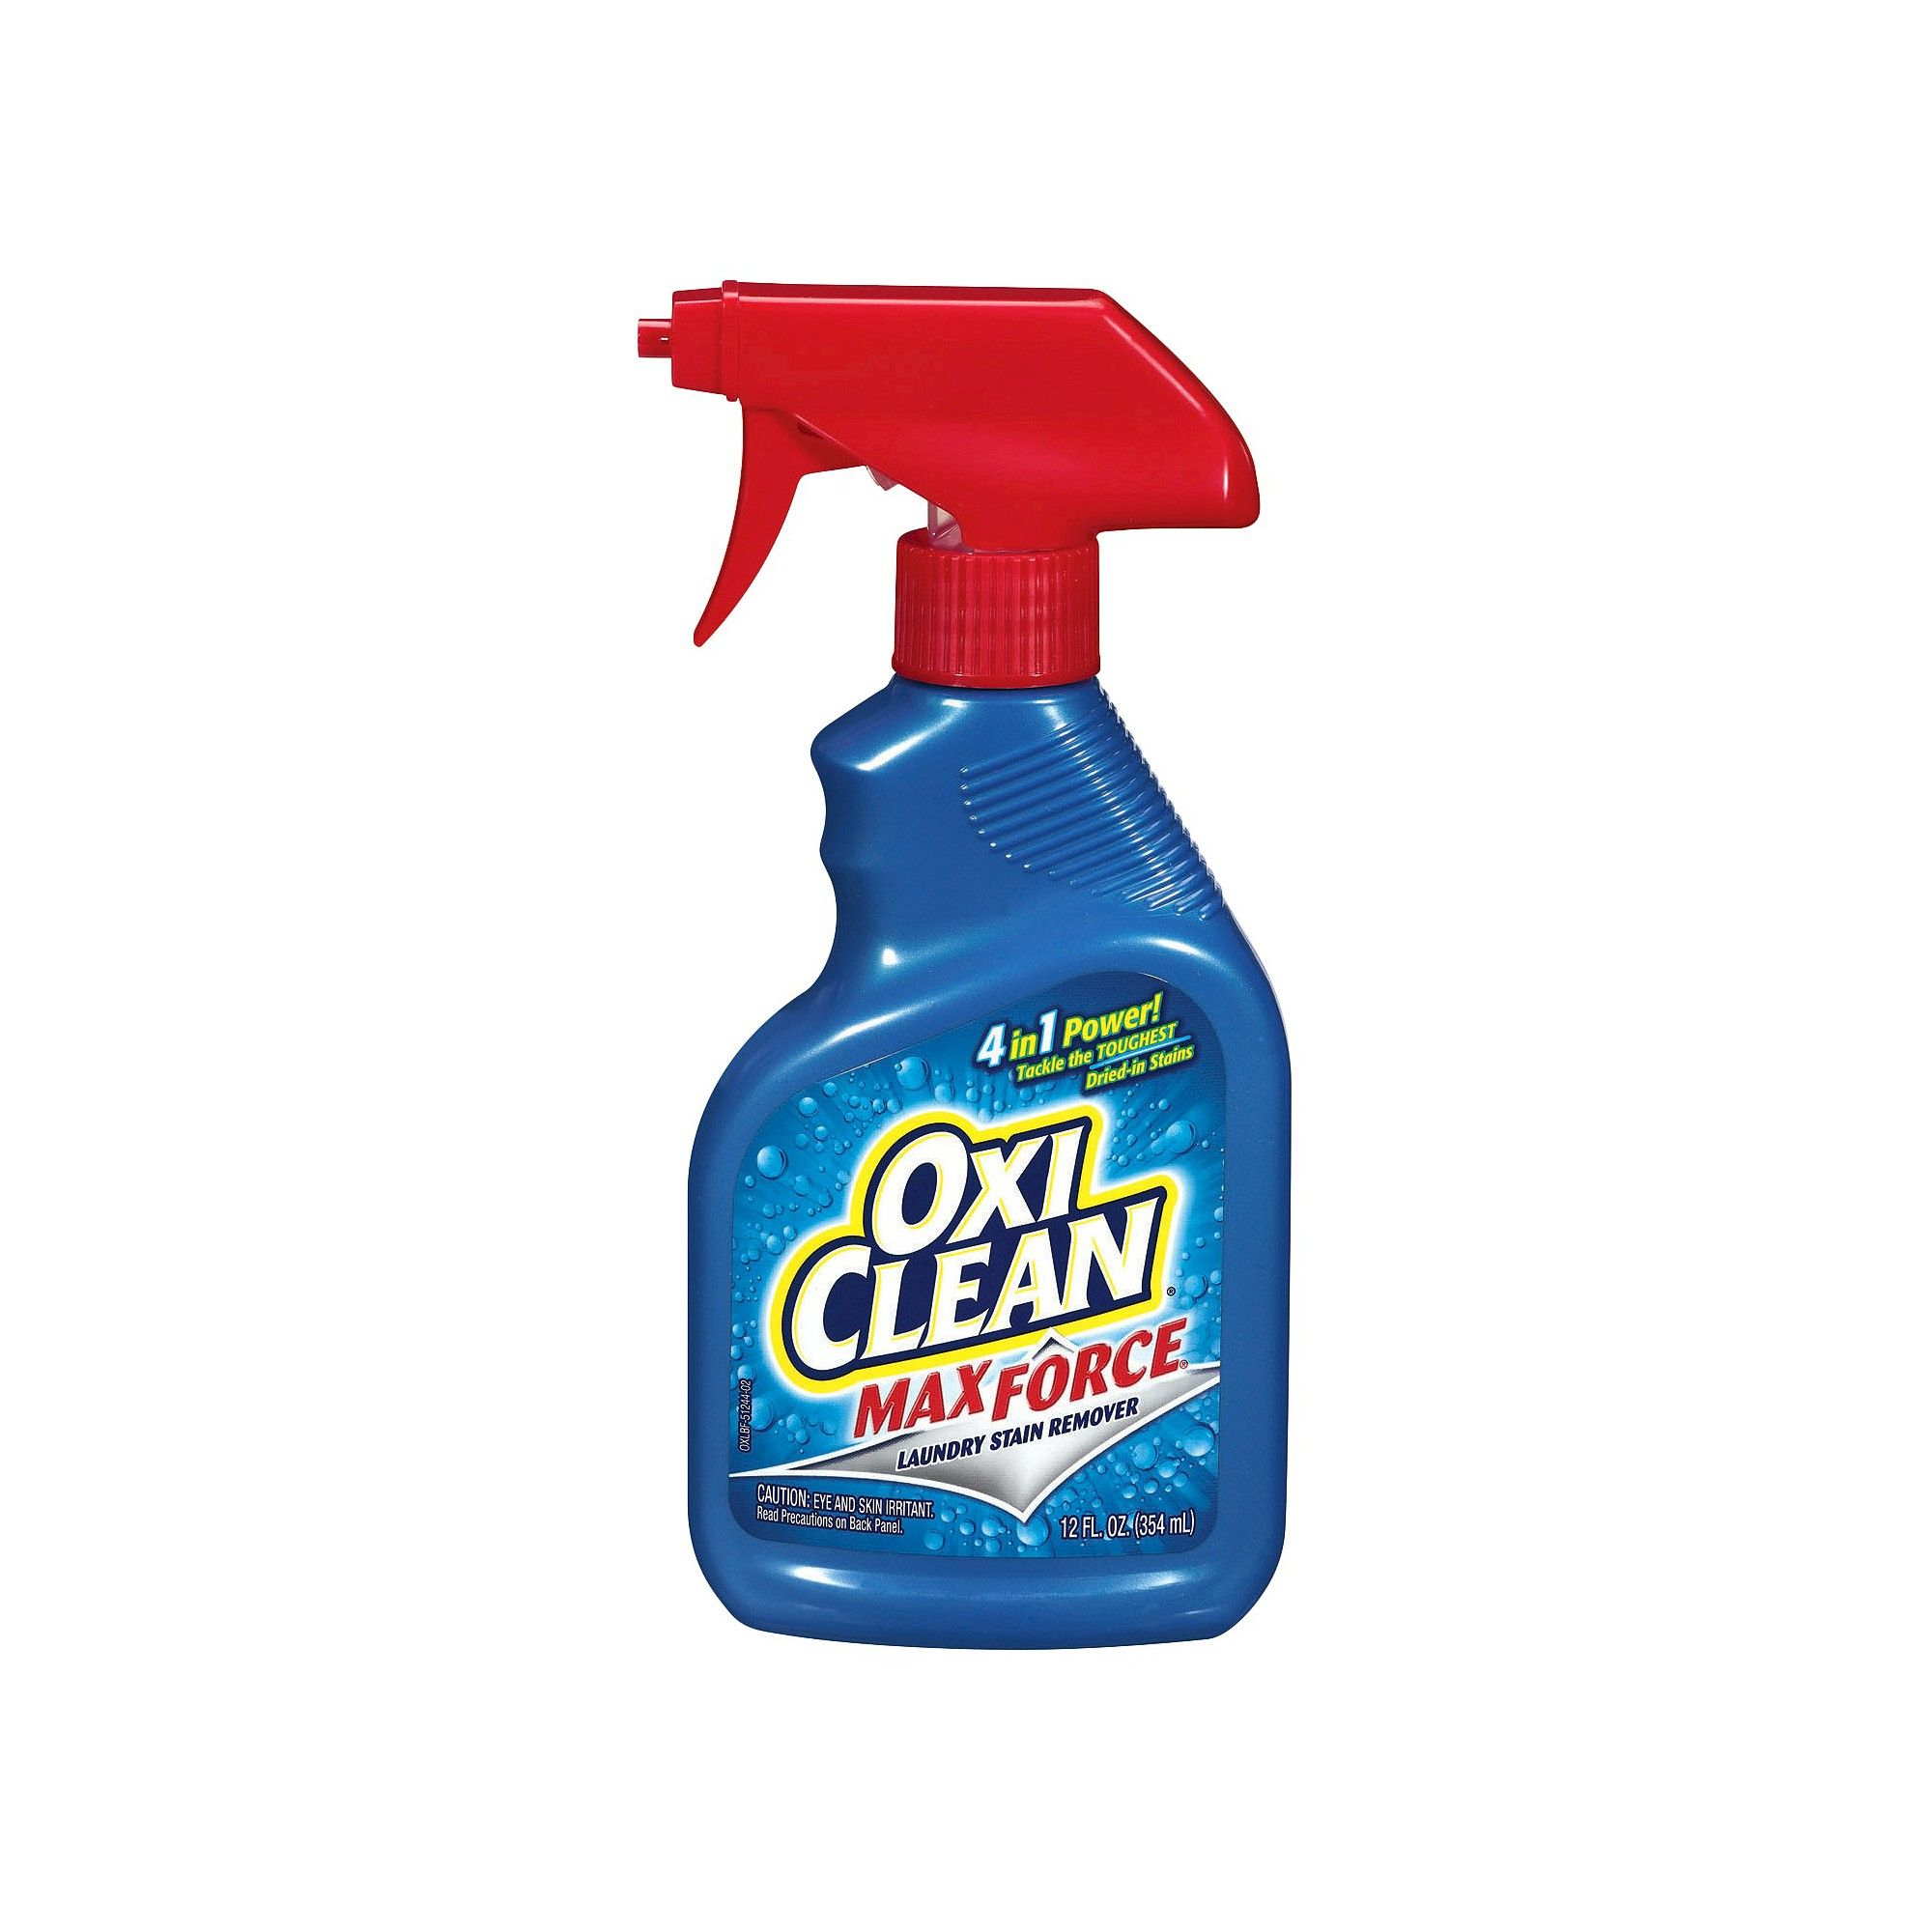 Oxiclean Maxforce Laundry Stain Remover Spray 12 Fl Oz In 2020